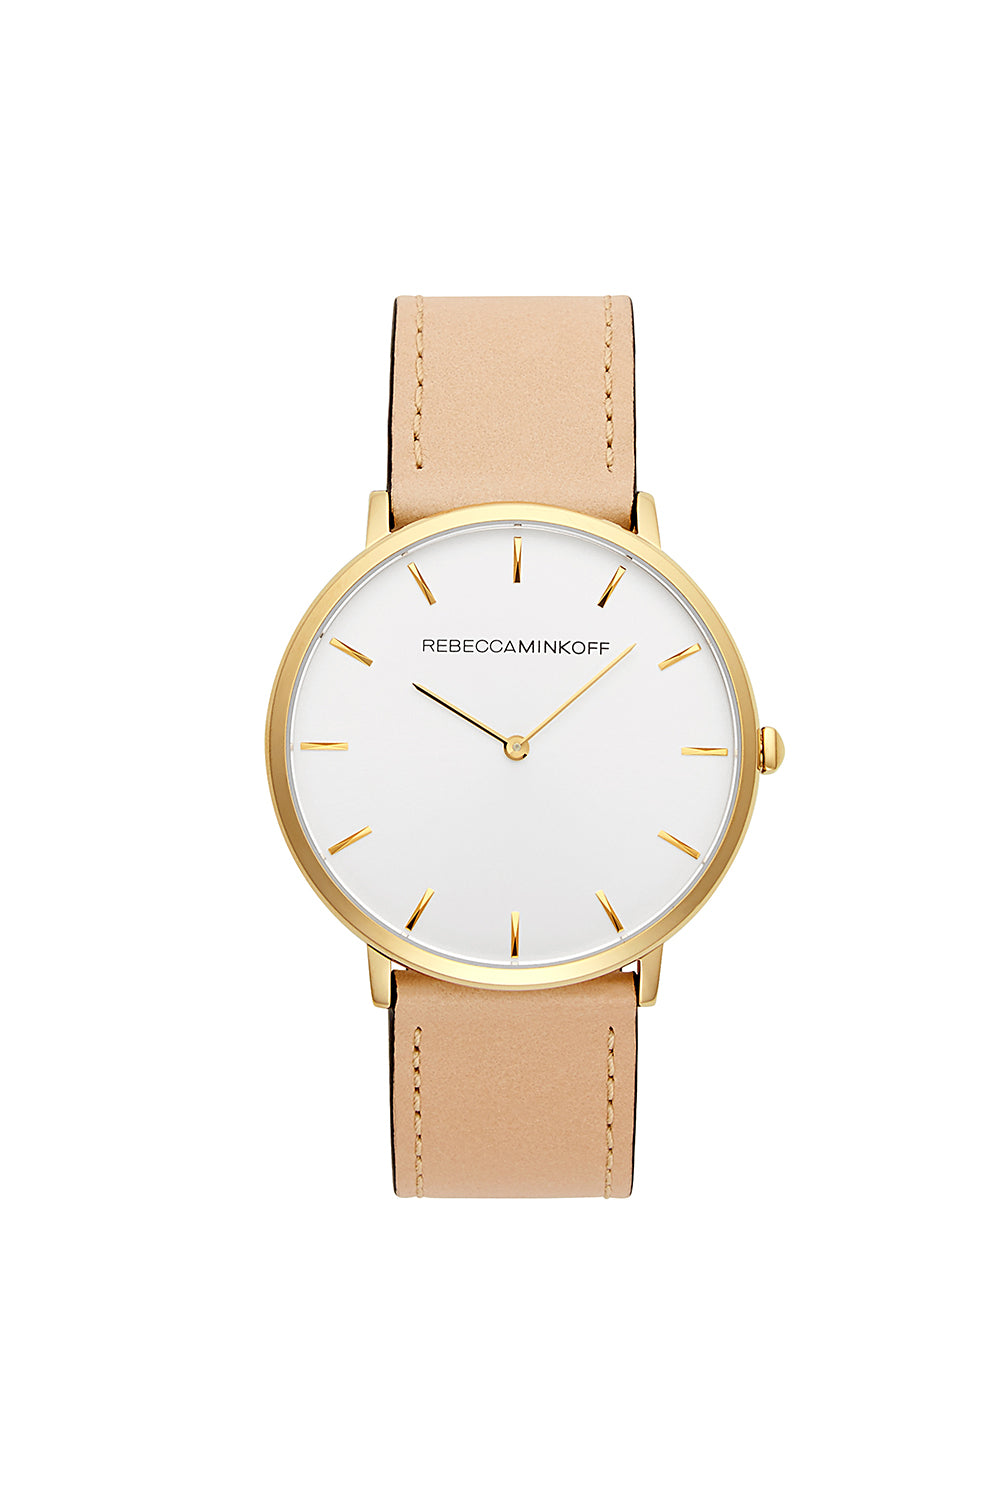 Rebecca-Minkoff Major Gold Tone Vanchetta Strap Watch, 40MM